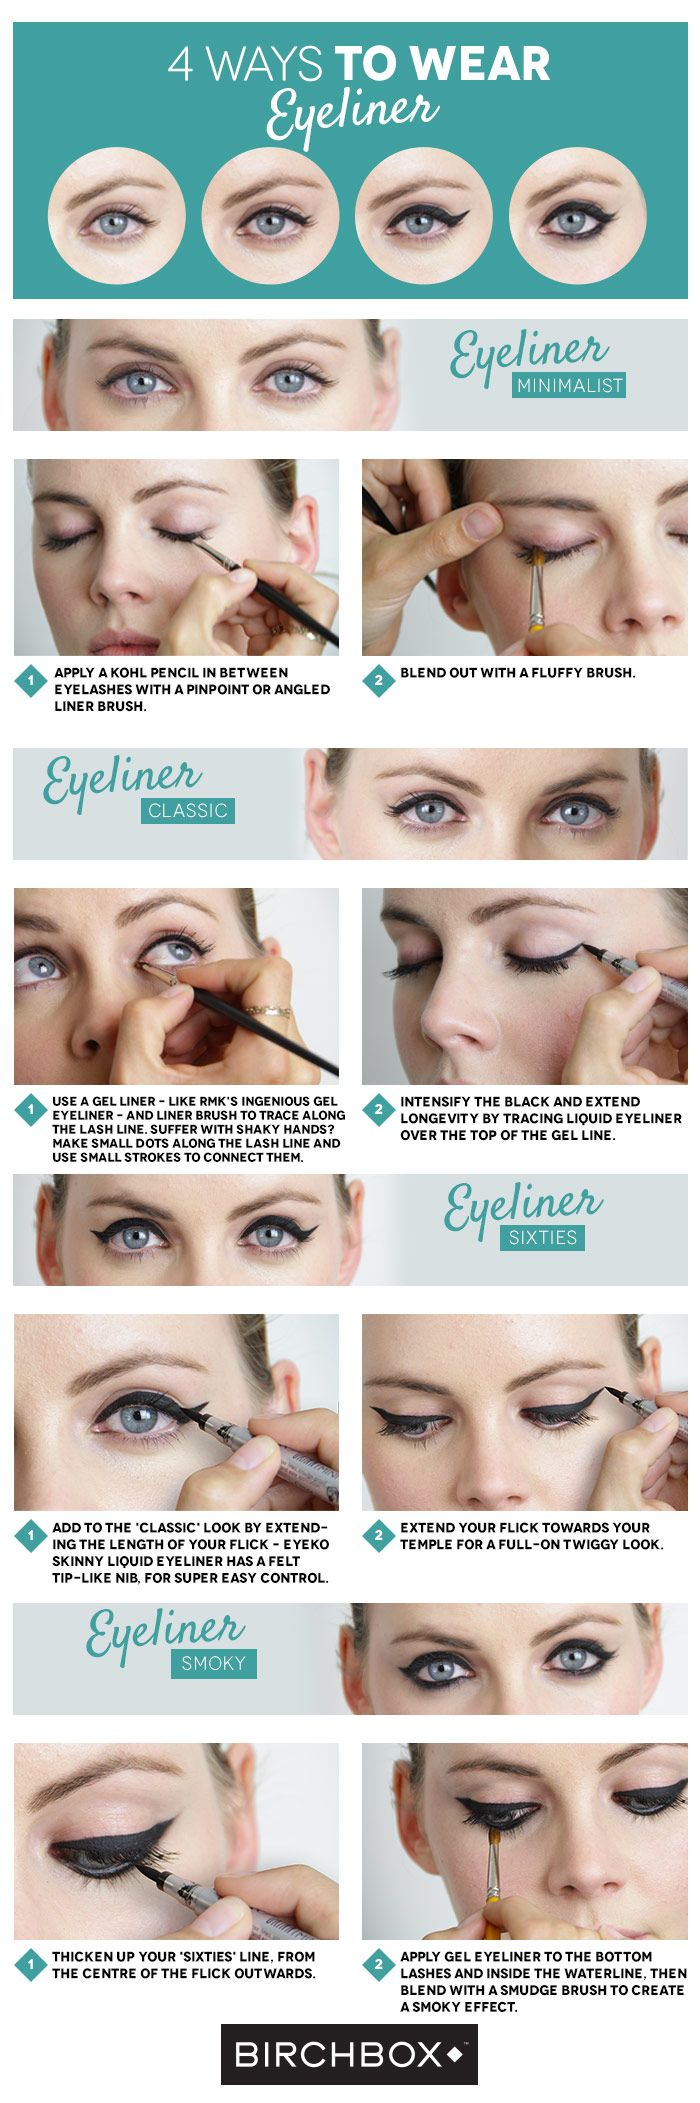 4 Ways To Wear Eyeliner